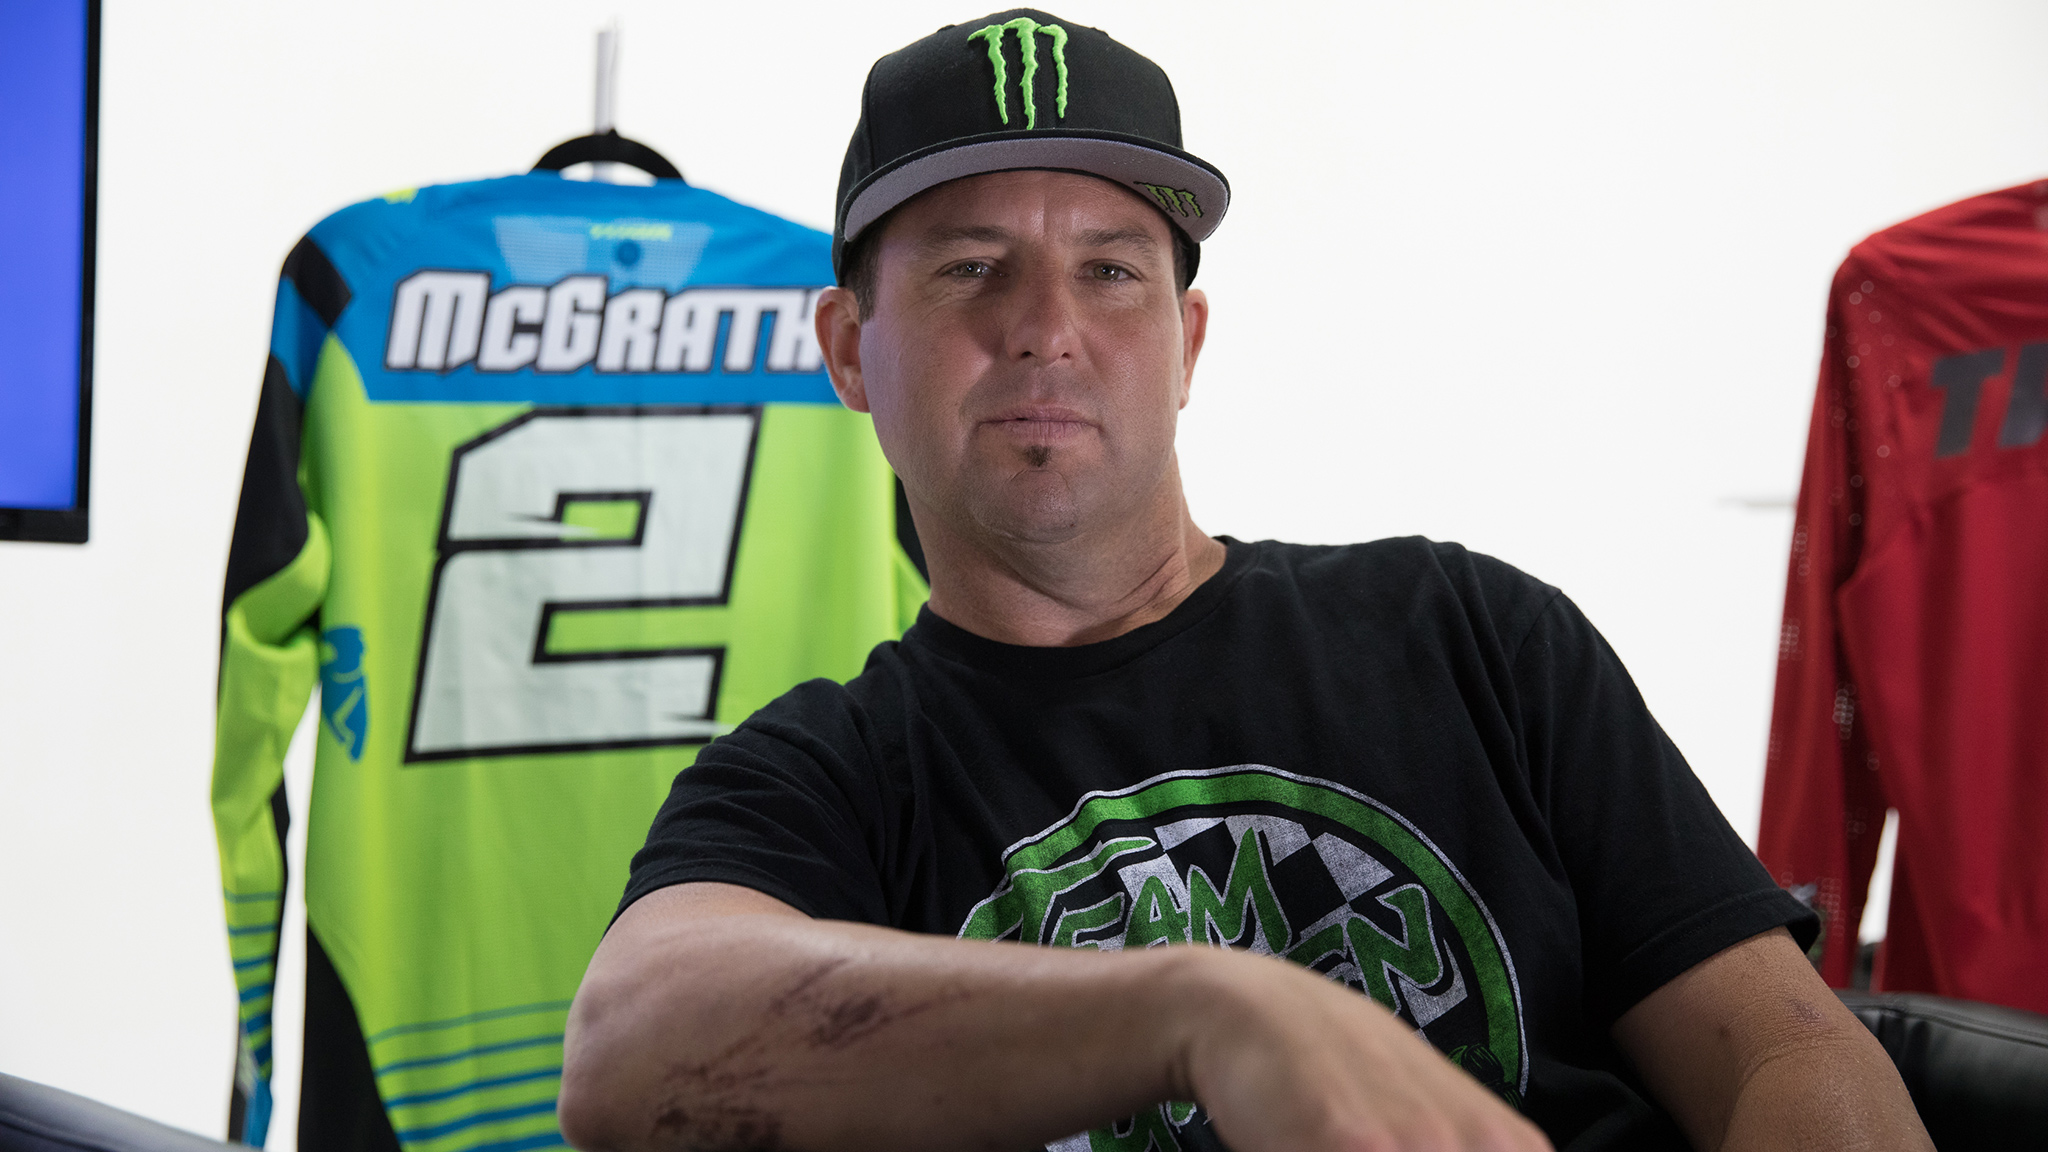 Judge: Jeremy McGrath